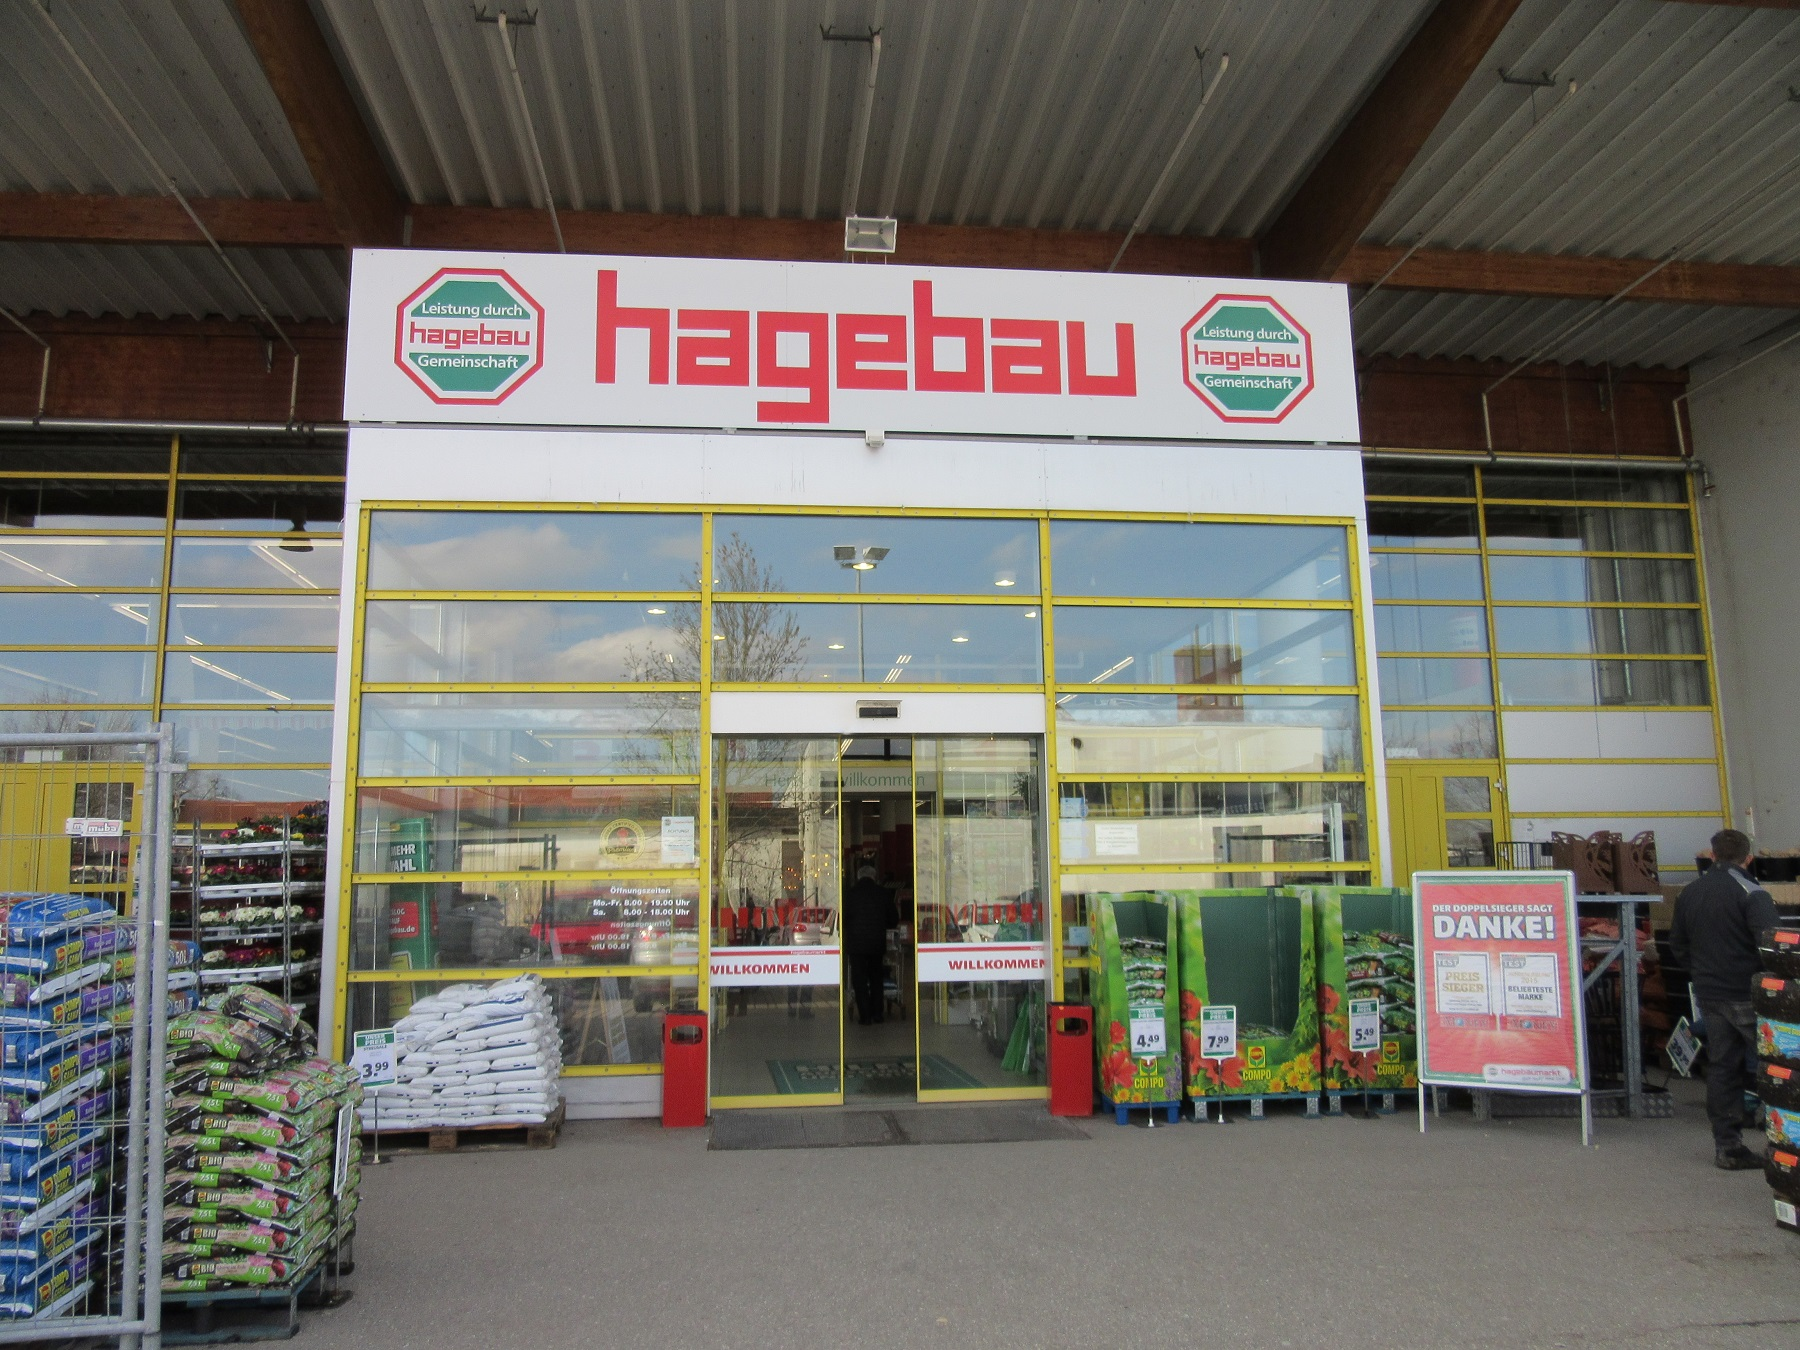 Weinregal Plastik Stapelbar Hagebau Finest Cooperative Menouquin Joins Hagebau With